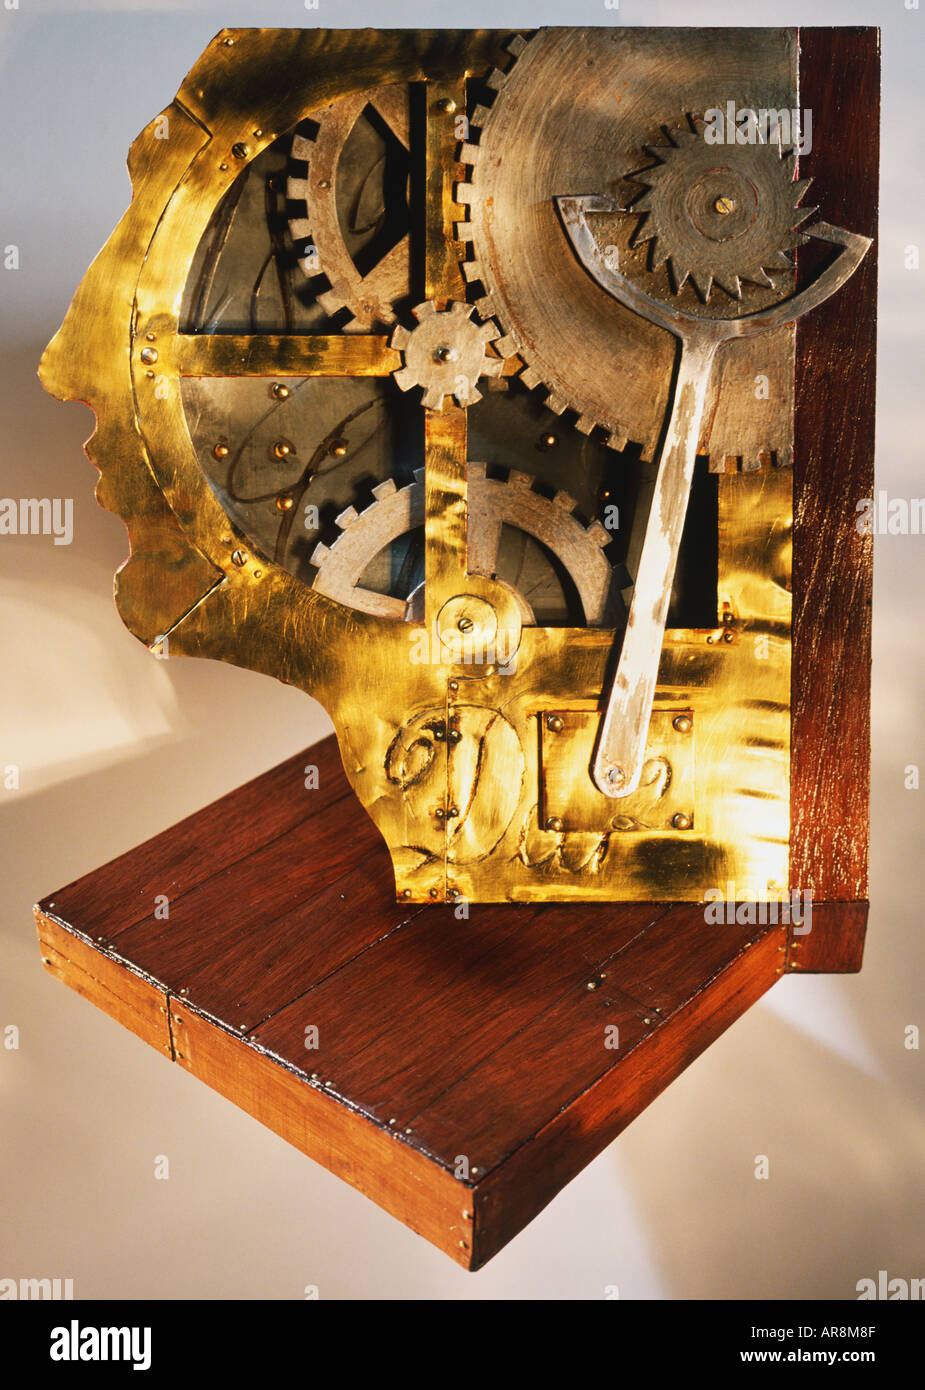 Metal face face made of clock mechanisms, interlocking cogs and levers turning, standing on wooden base, face in profile. - Stock Image